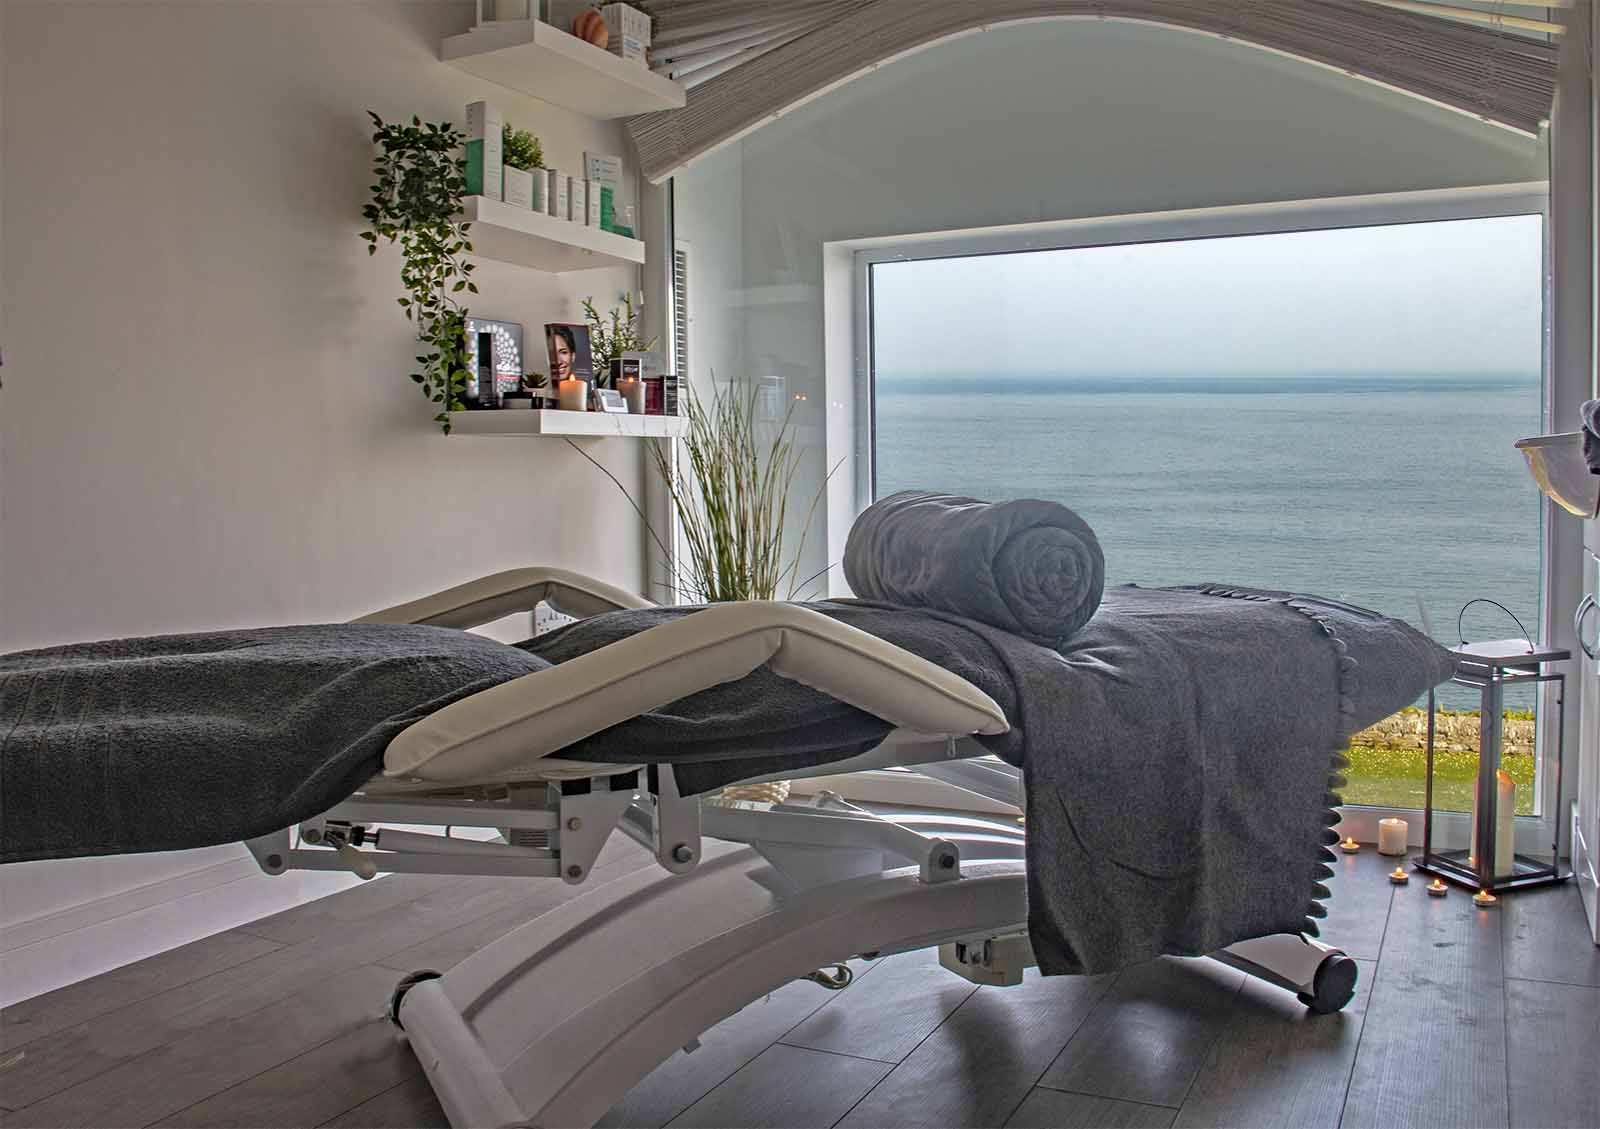 Ocean View Treatment Room, Atlantic Hotel in Newquay Cornwall